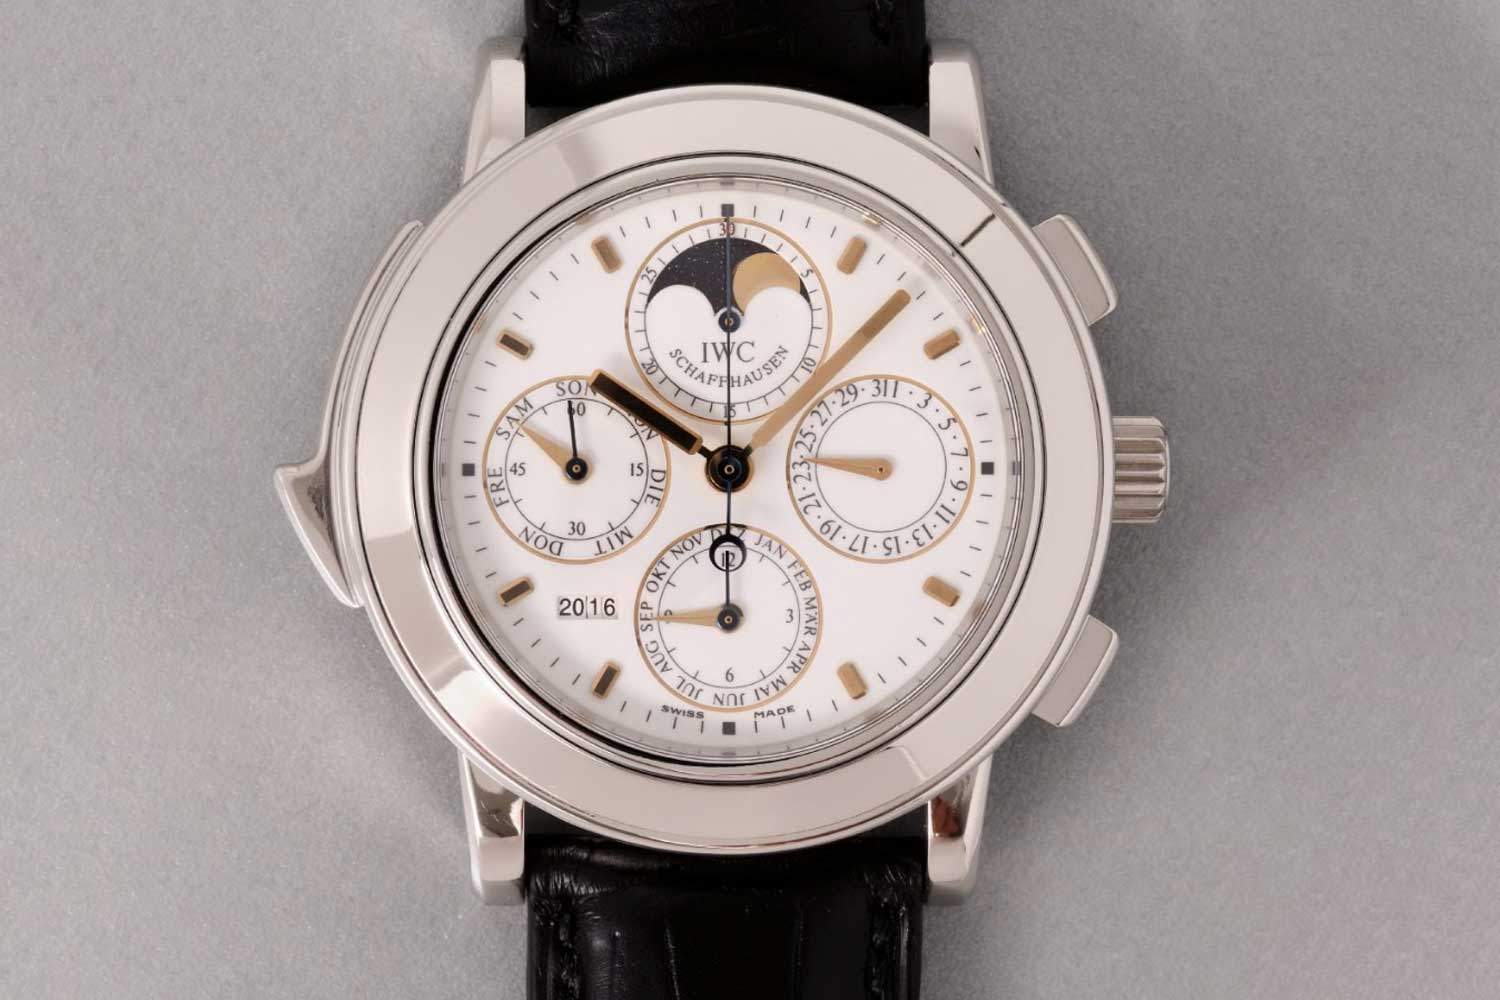 Renaud & Papi's first watch was the landmark IWC Grande Complication ref. 3770